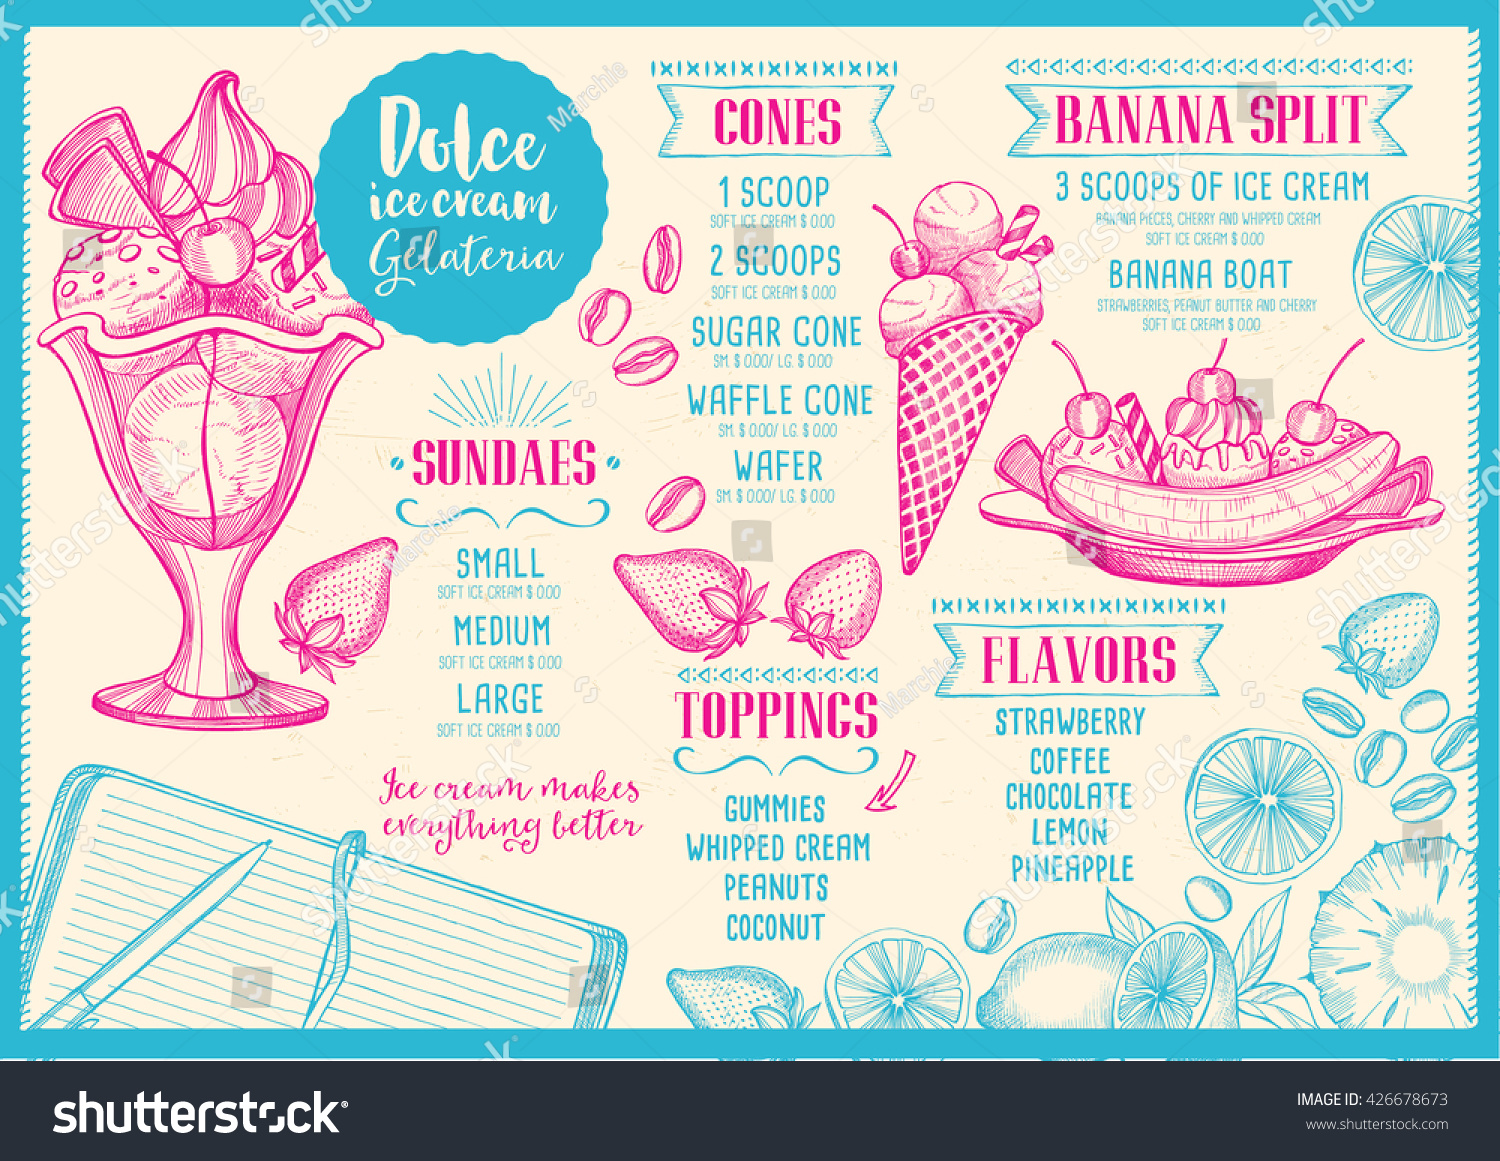 Ice Cream Menu Placemat Food Restaurant Stock Vector